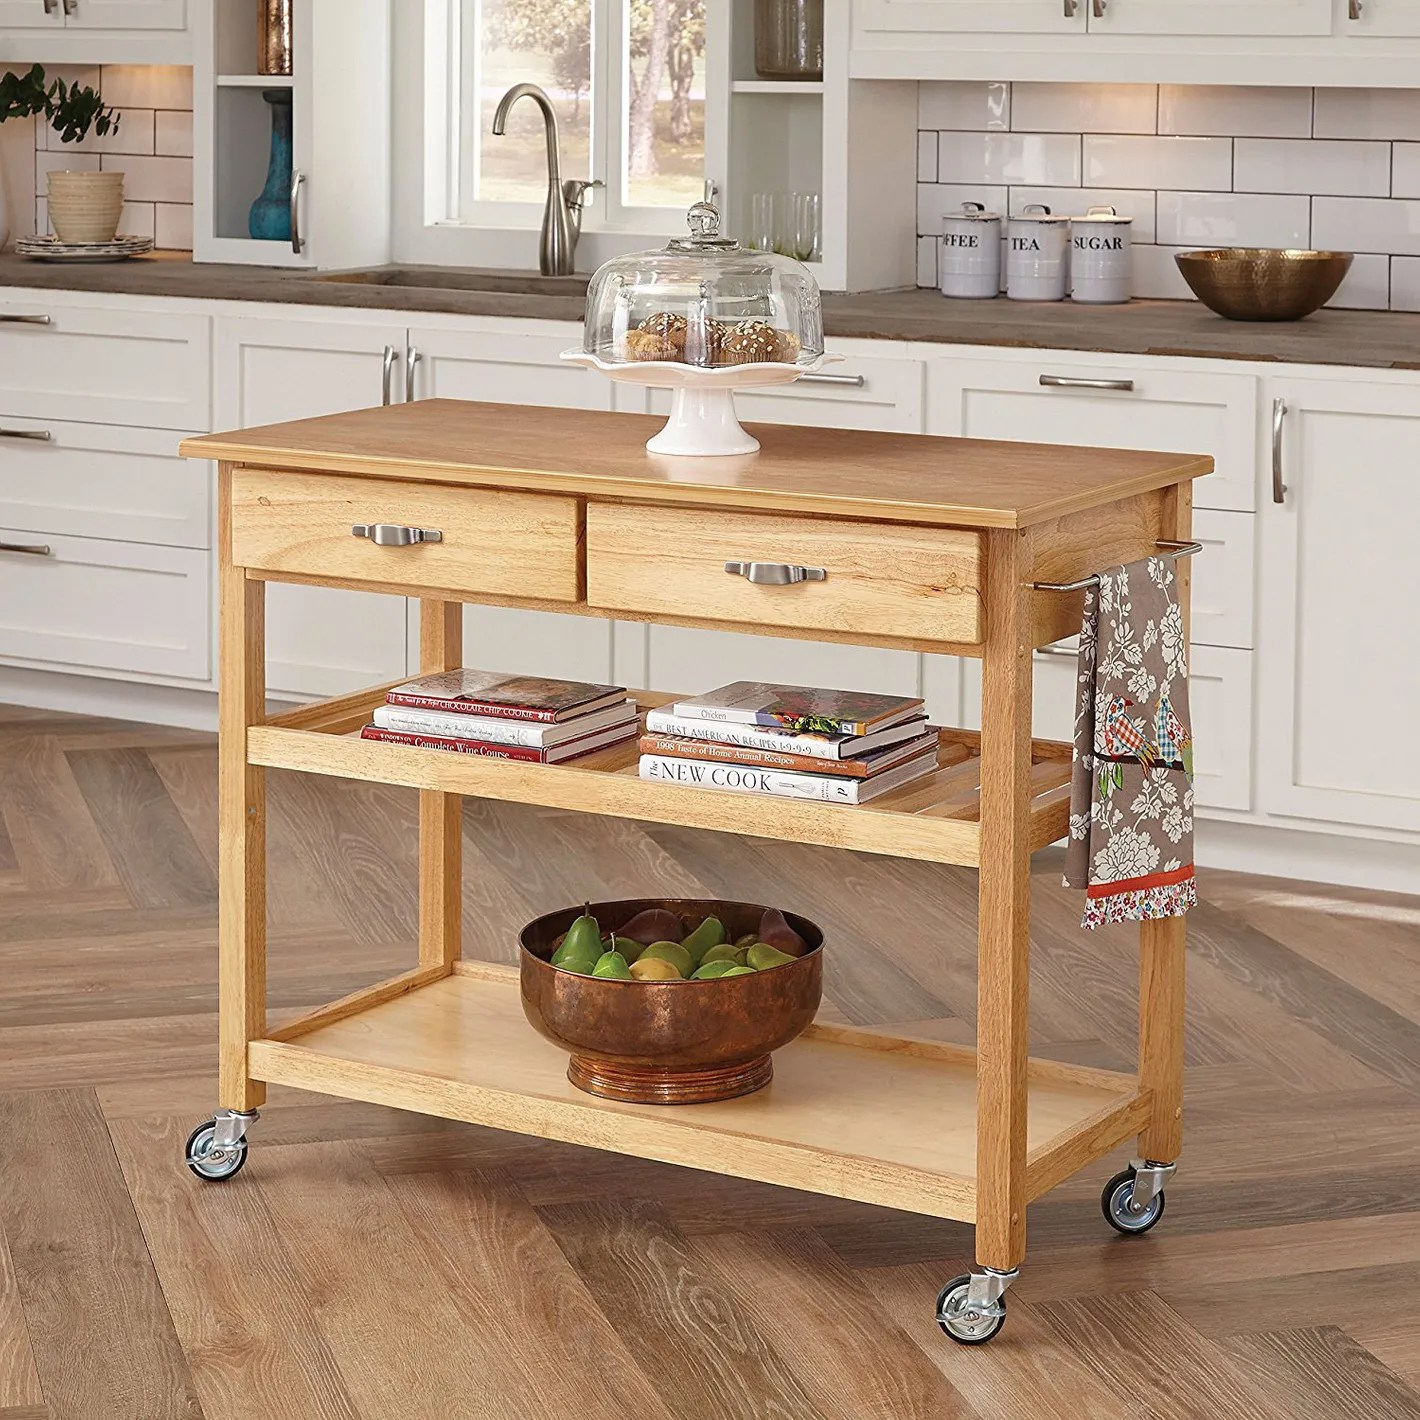 best kitchen islands ebay the 14 butcher block and carts 2018 home styles 5216 95 solid wood top cart natural finish